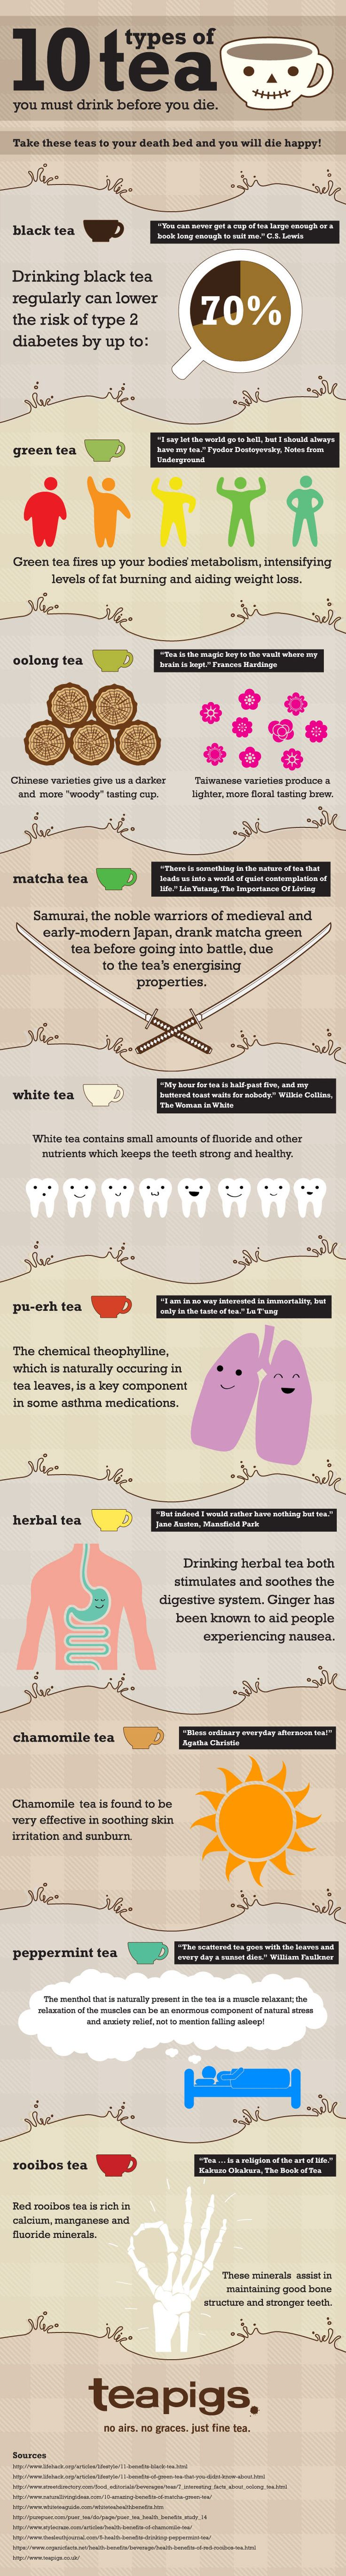 10 Types of Tea You Should Try